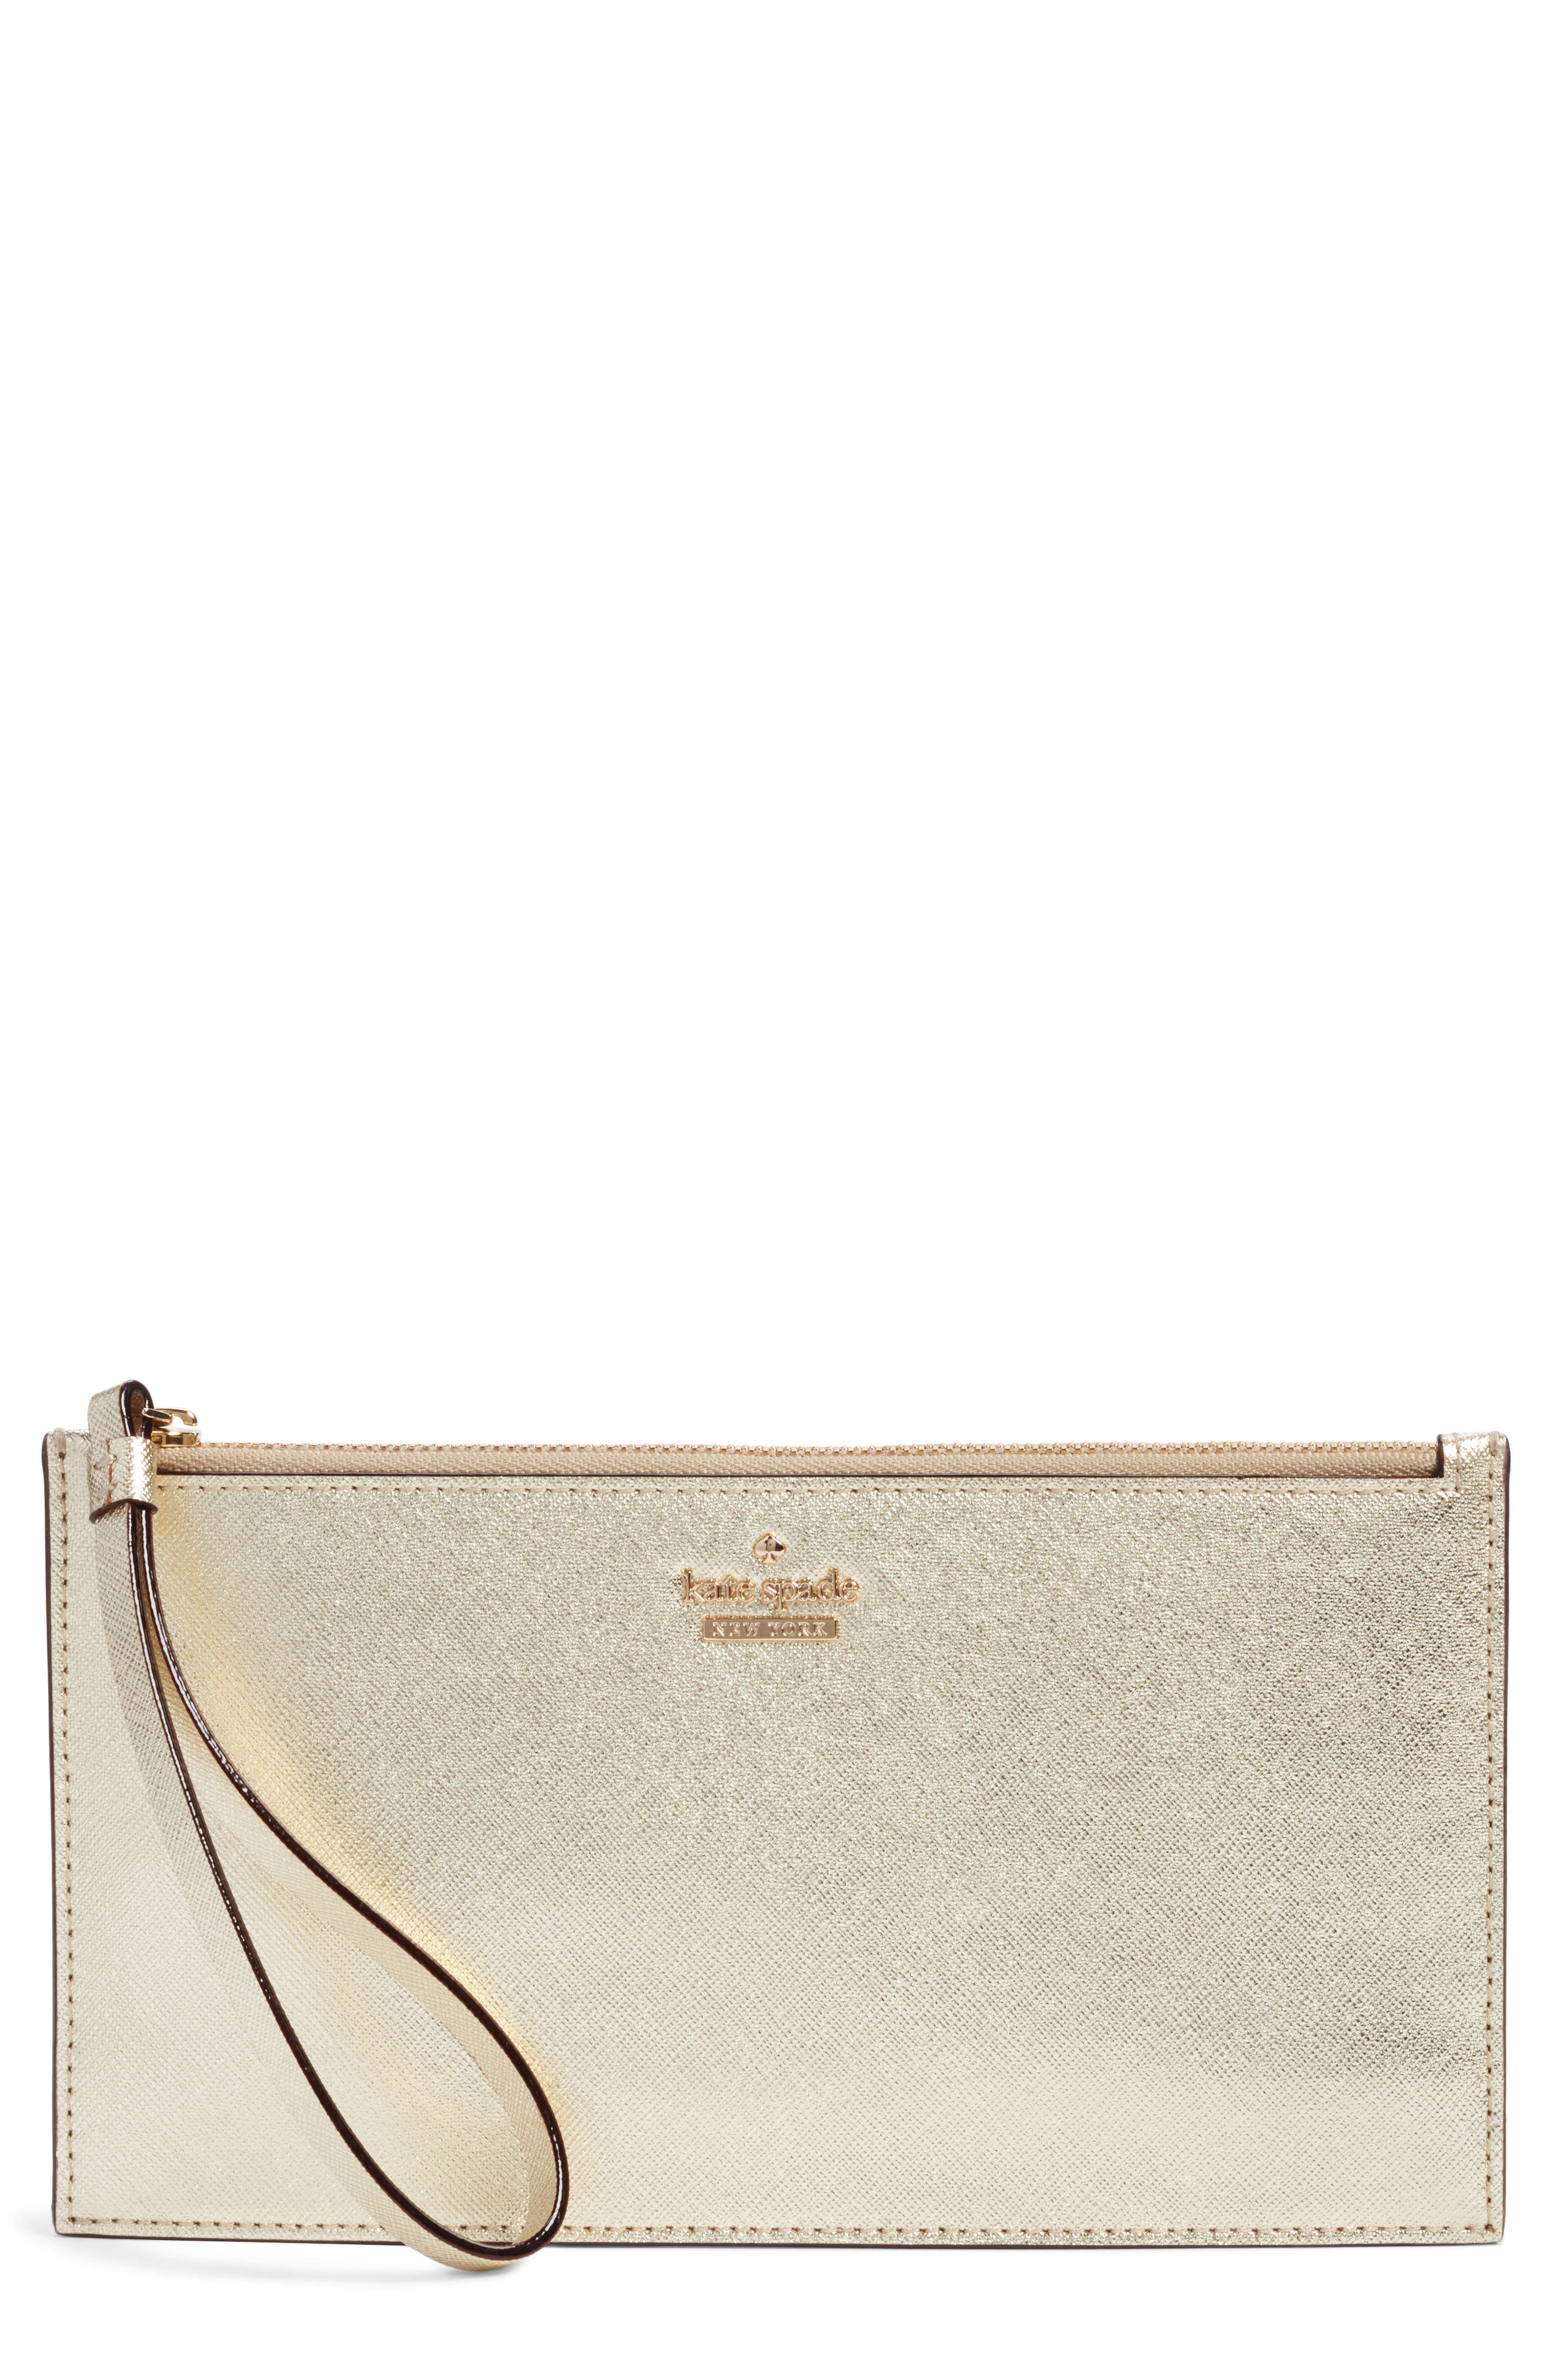 cameron street ariah leather wristlet,                         Main,                         color, Gold